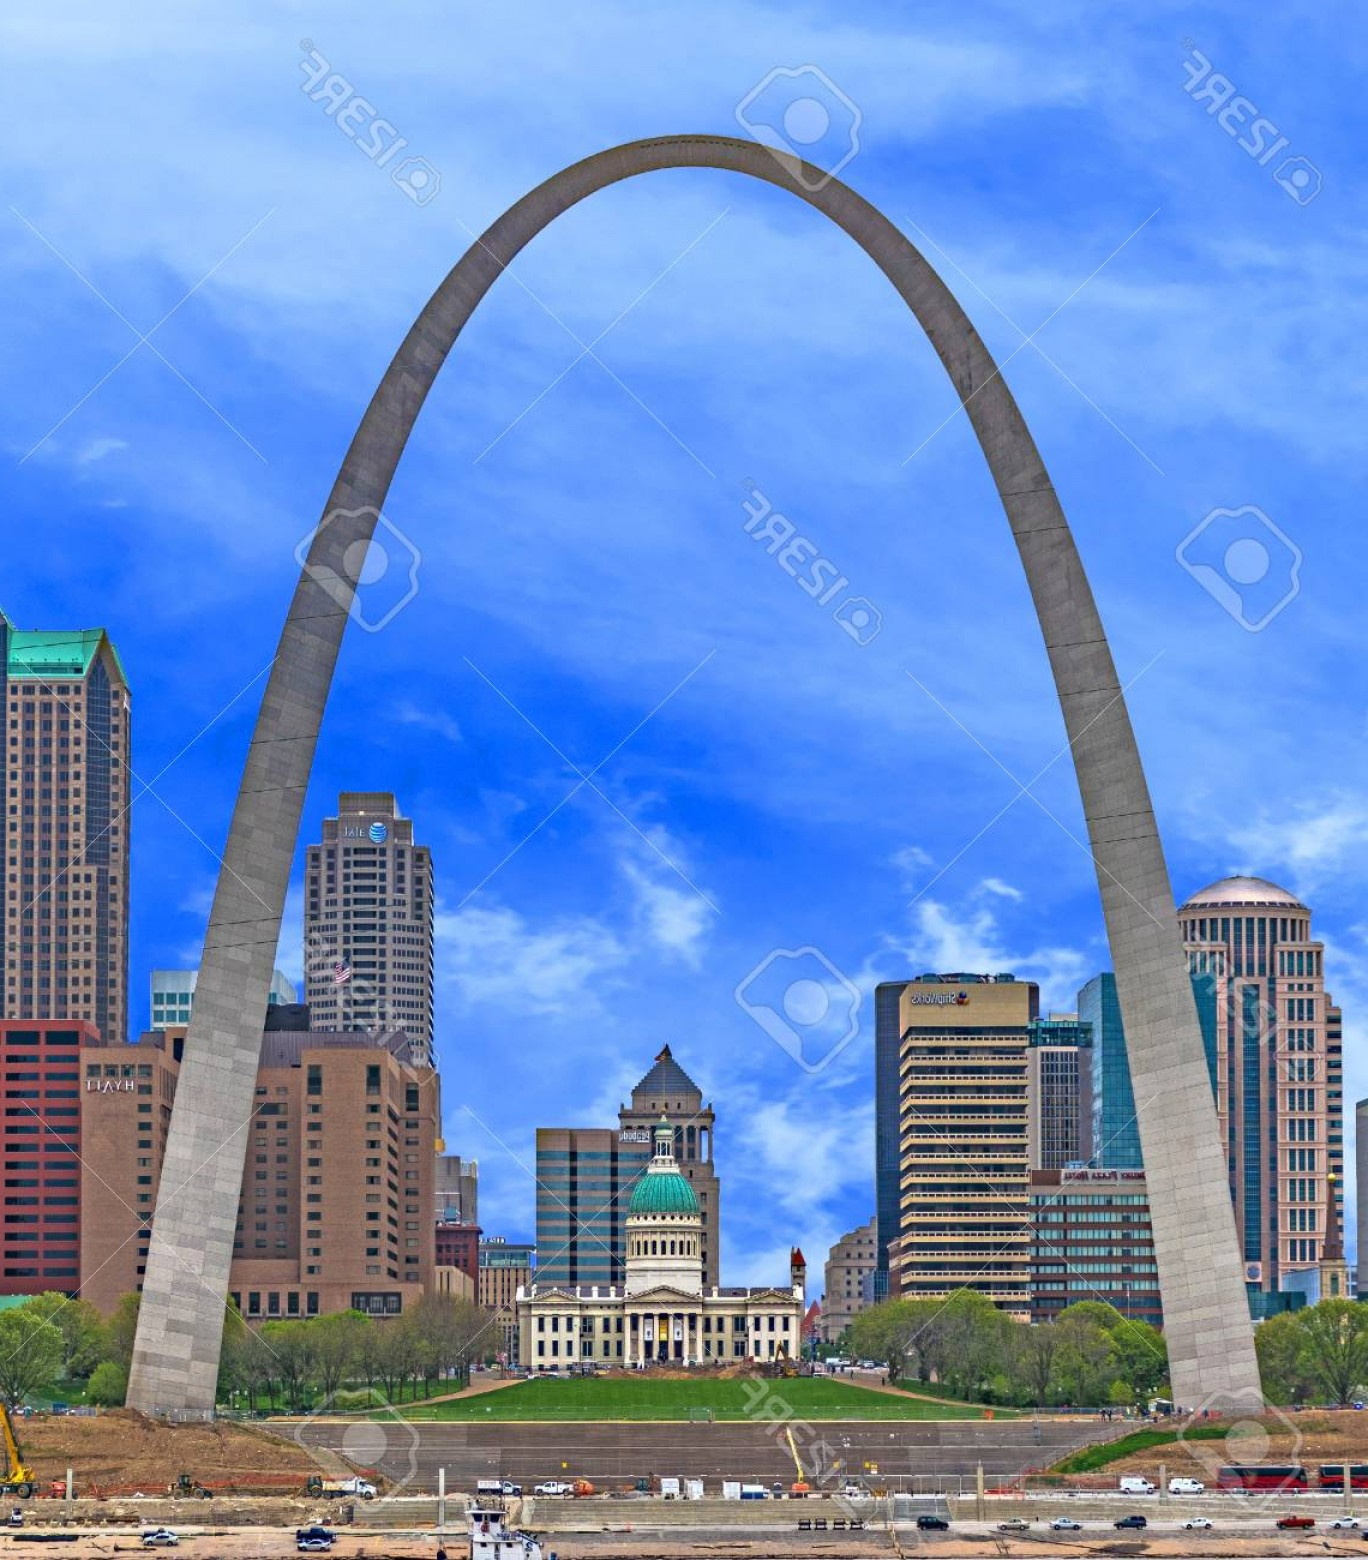 Arch Vector Illinios: Photosaint Louis Arch And Old Courthouse